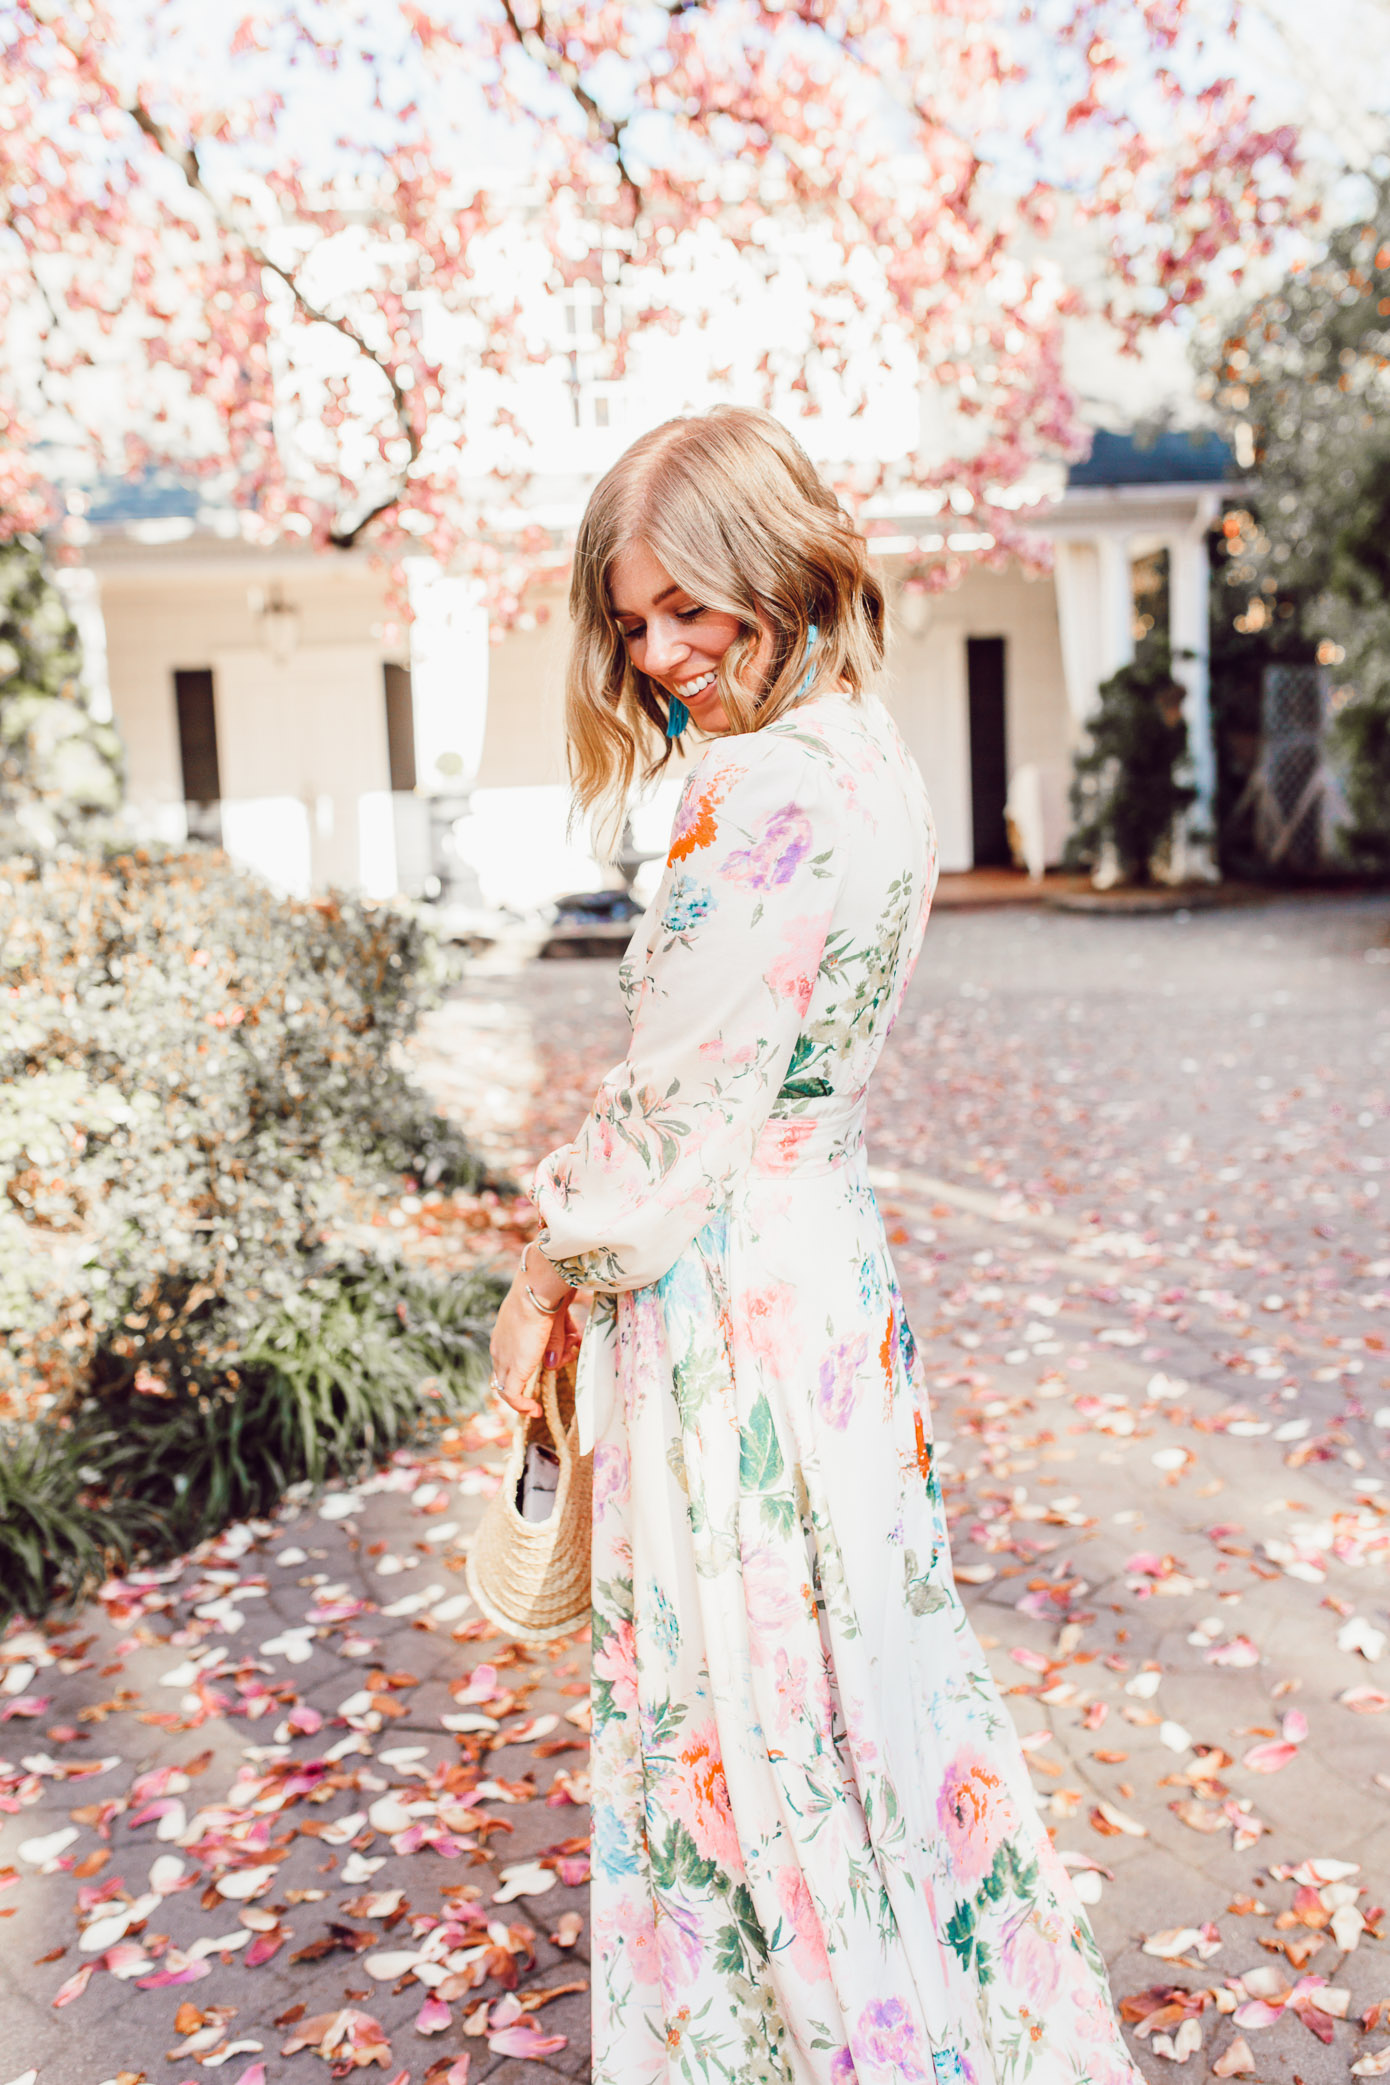 Tips for wearing floral maxi dresses and how to accessorize colorful dresses | Louella Reese | ft. Chicwish, Soludos, Lisi Lerch